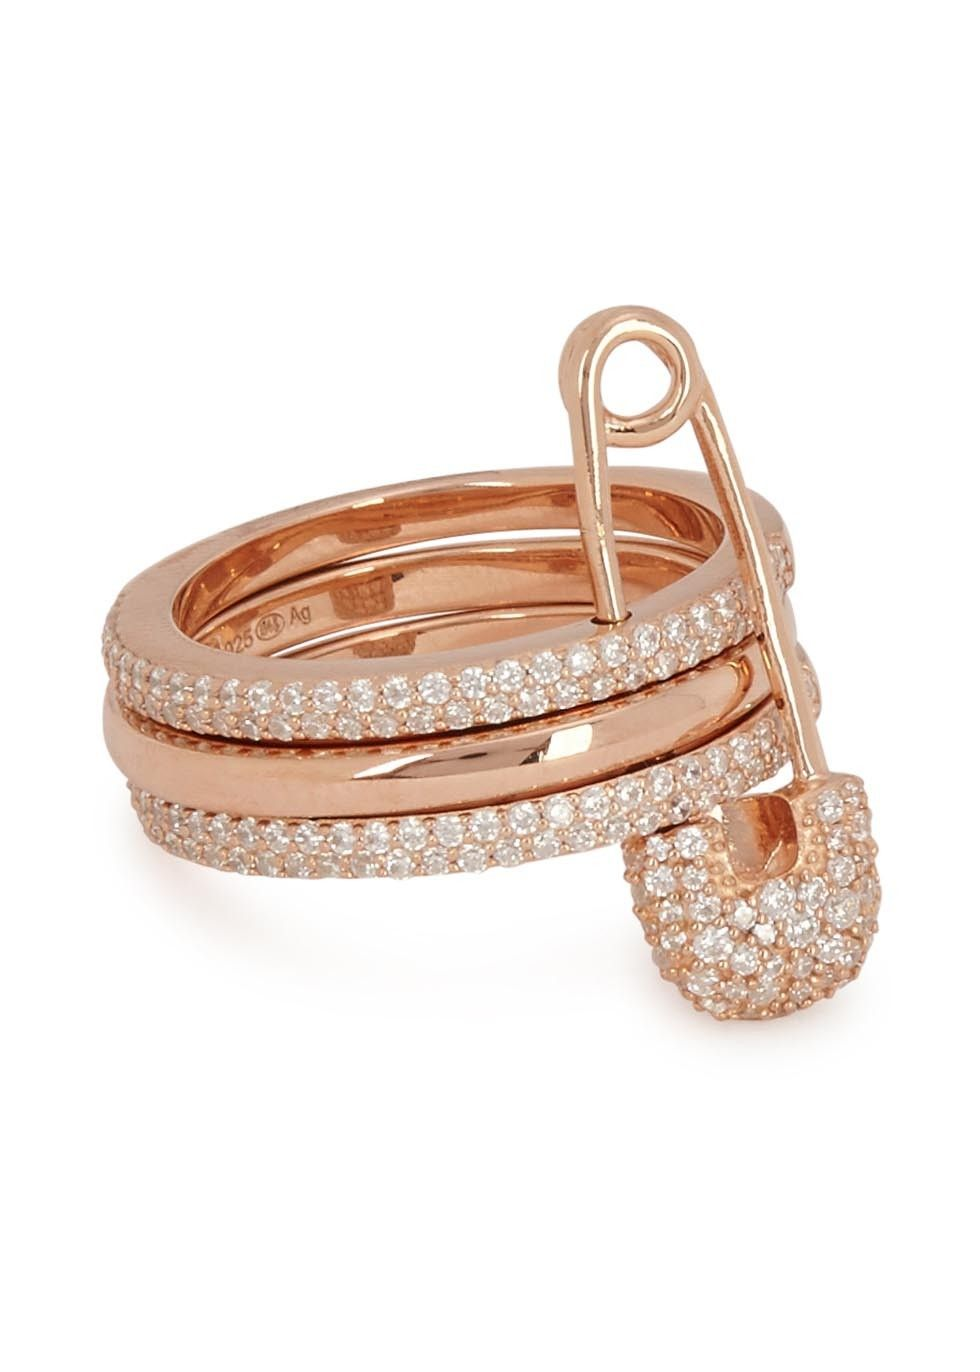 safety wedding rings APM Monaco rose gold plated sterling silver ring Tiered design safety pin and pav